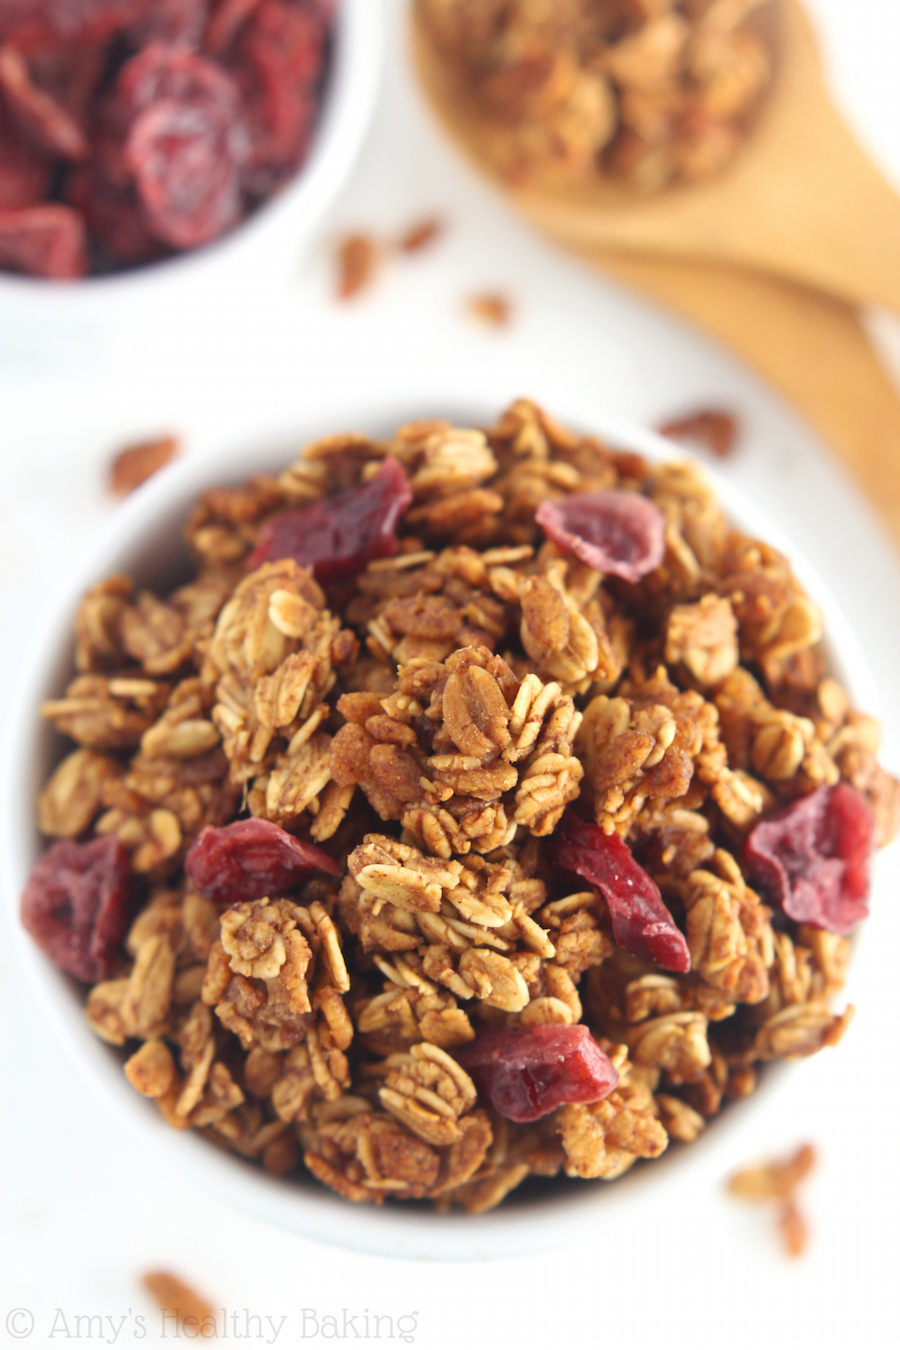 Cranberry Gingerbread Granola - an easy recipe packed full of crunchy clusters! Even better, it's healthy AND delicious!